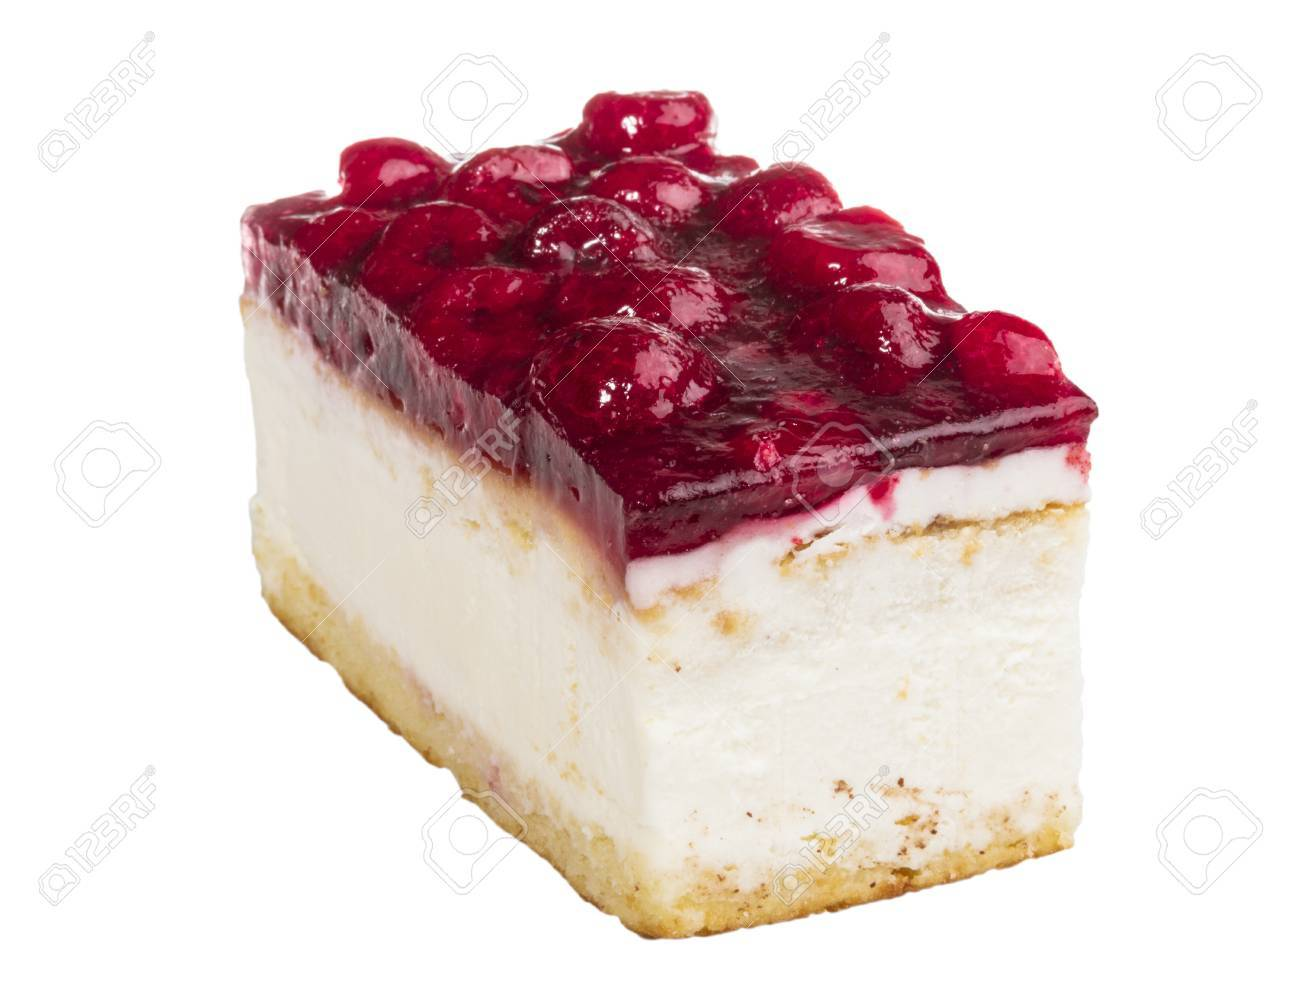 raspberry cake Stock Photo - 14034629